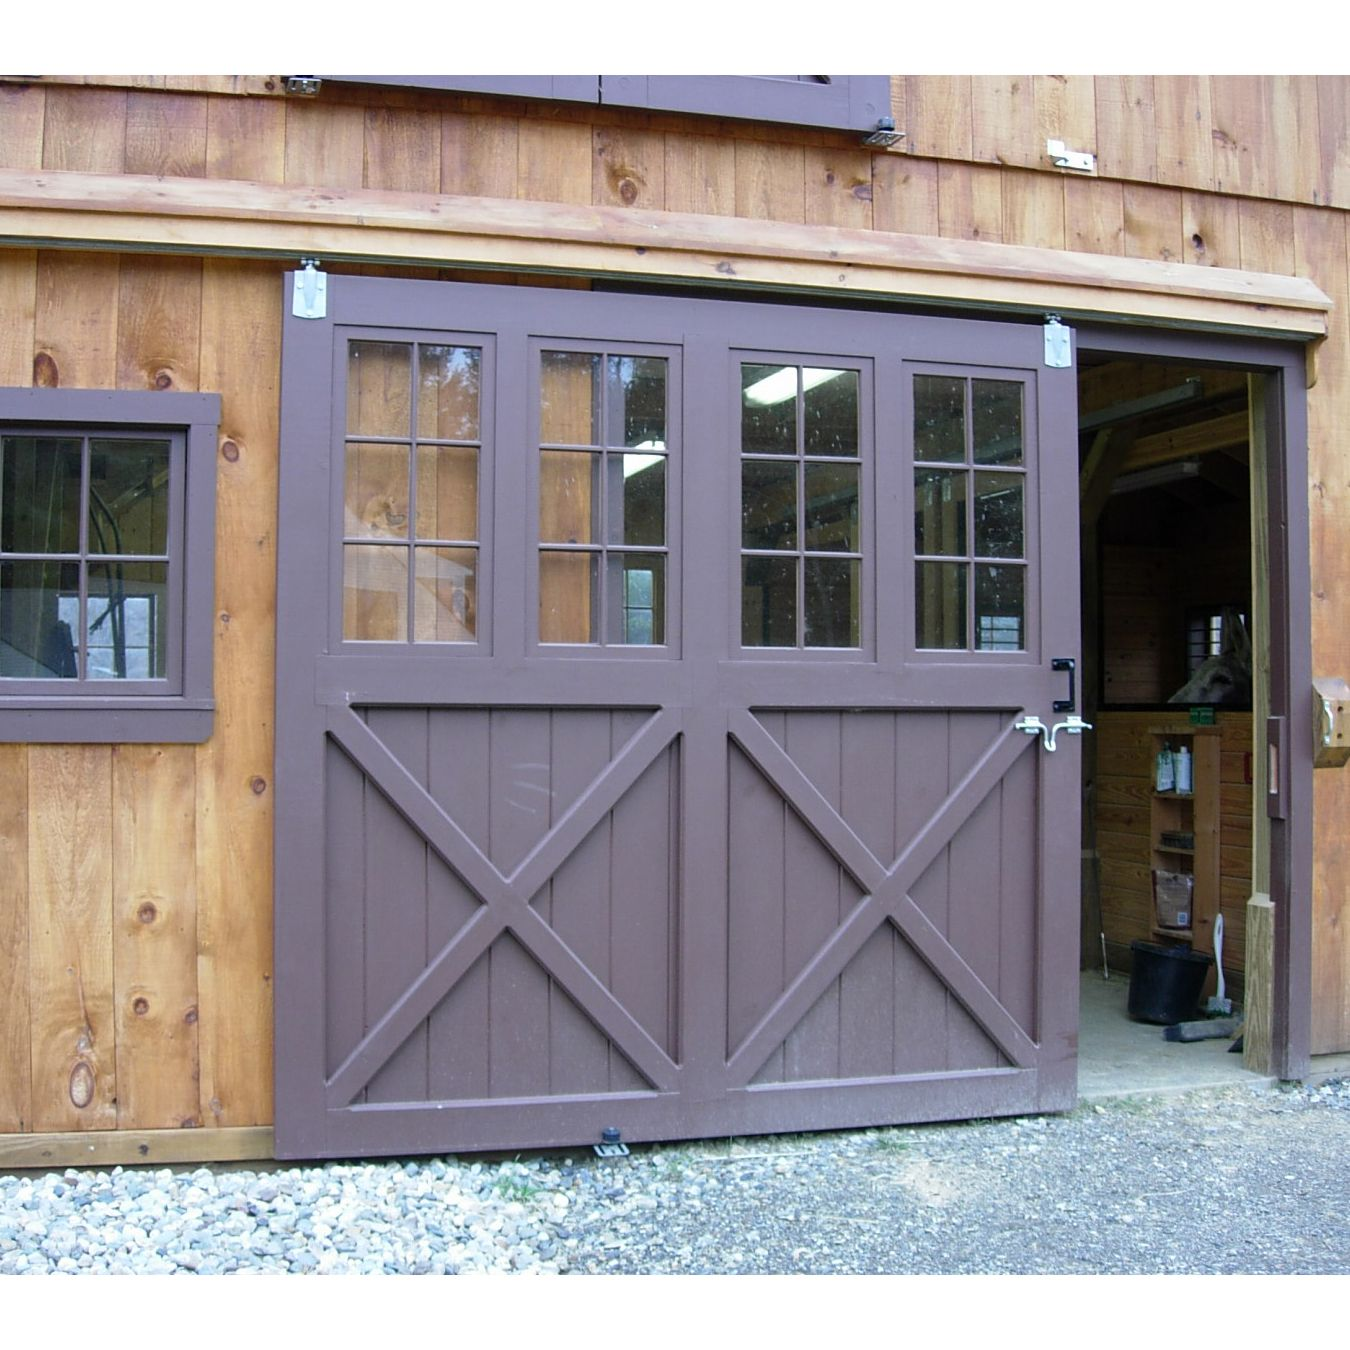 Sliding Dutch barn doors -- handsome for a workshop ...